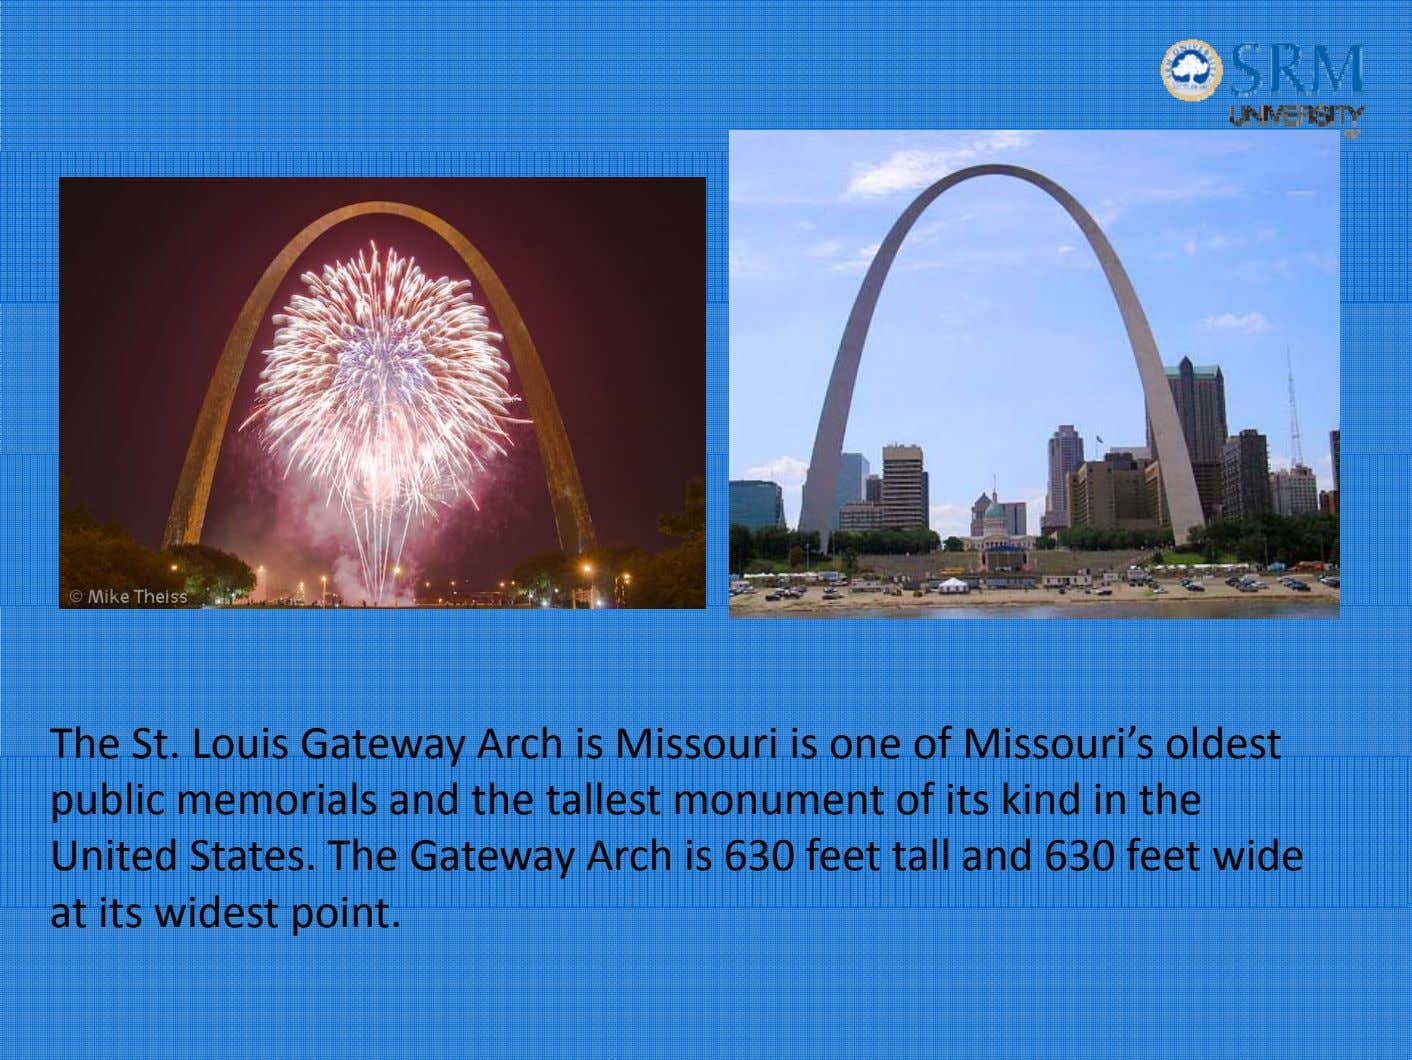 The St. Louis Gateway Arch is Missouri is one of Missouri 's oldest public memorials